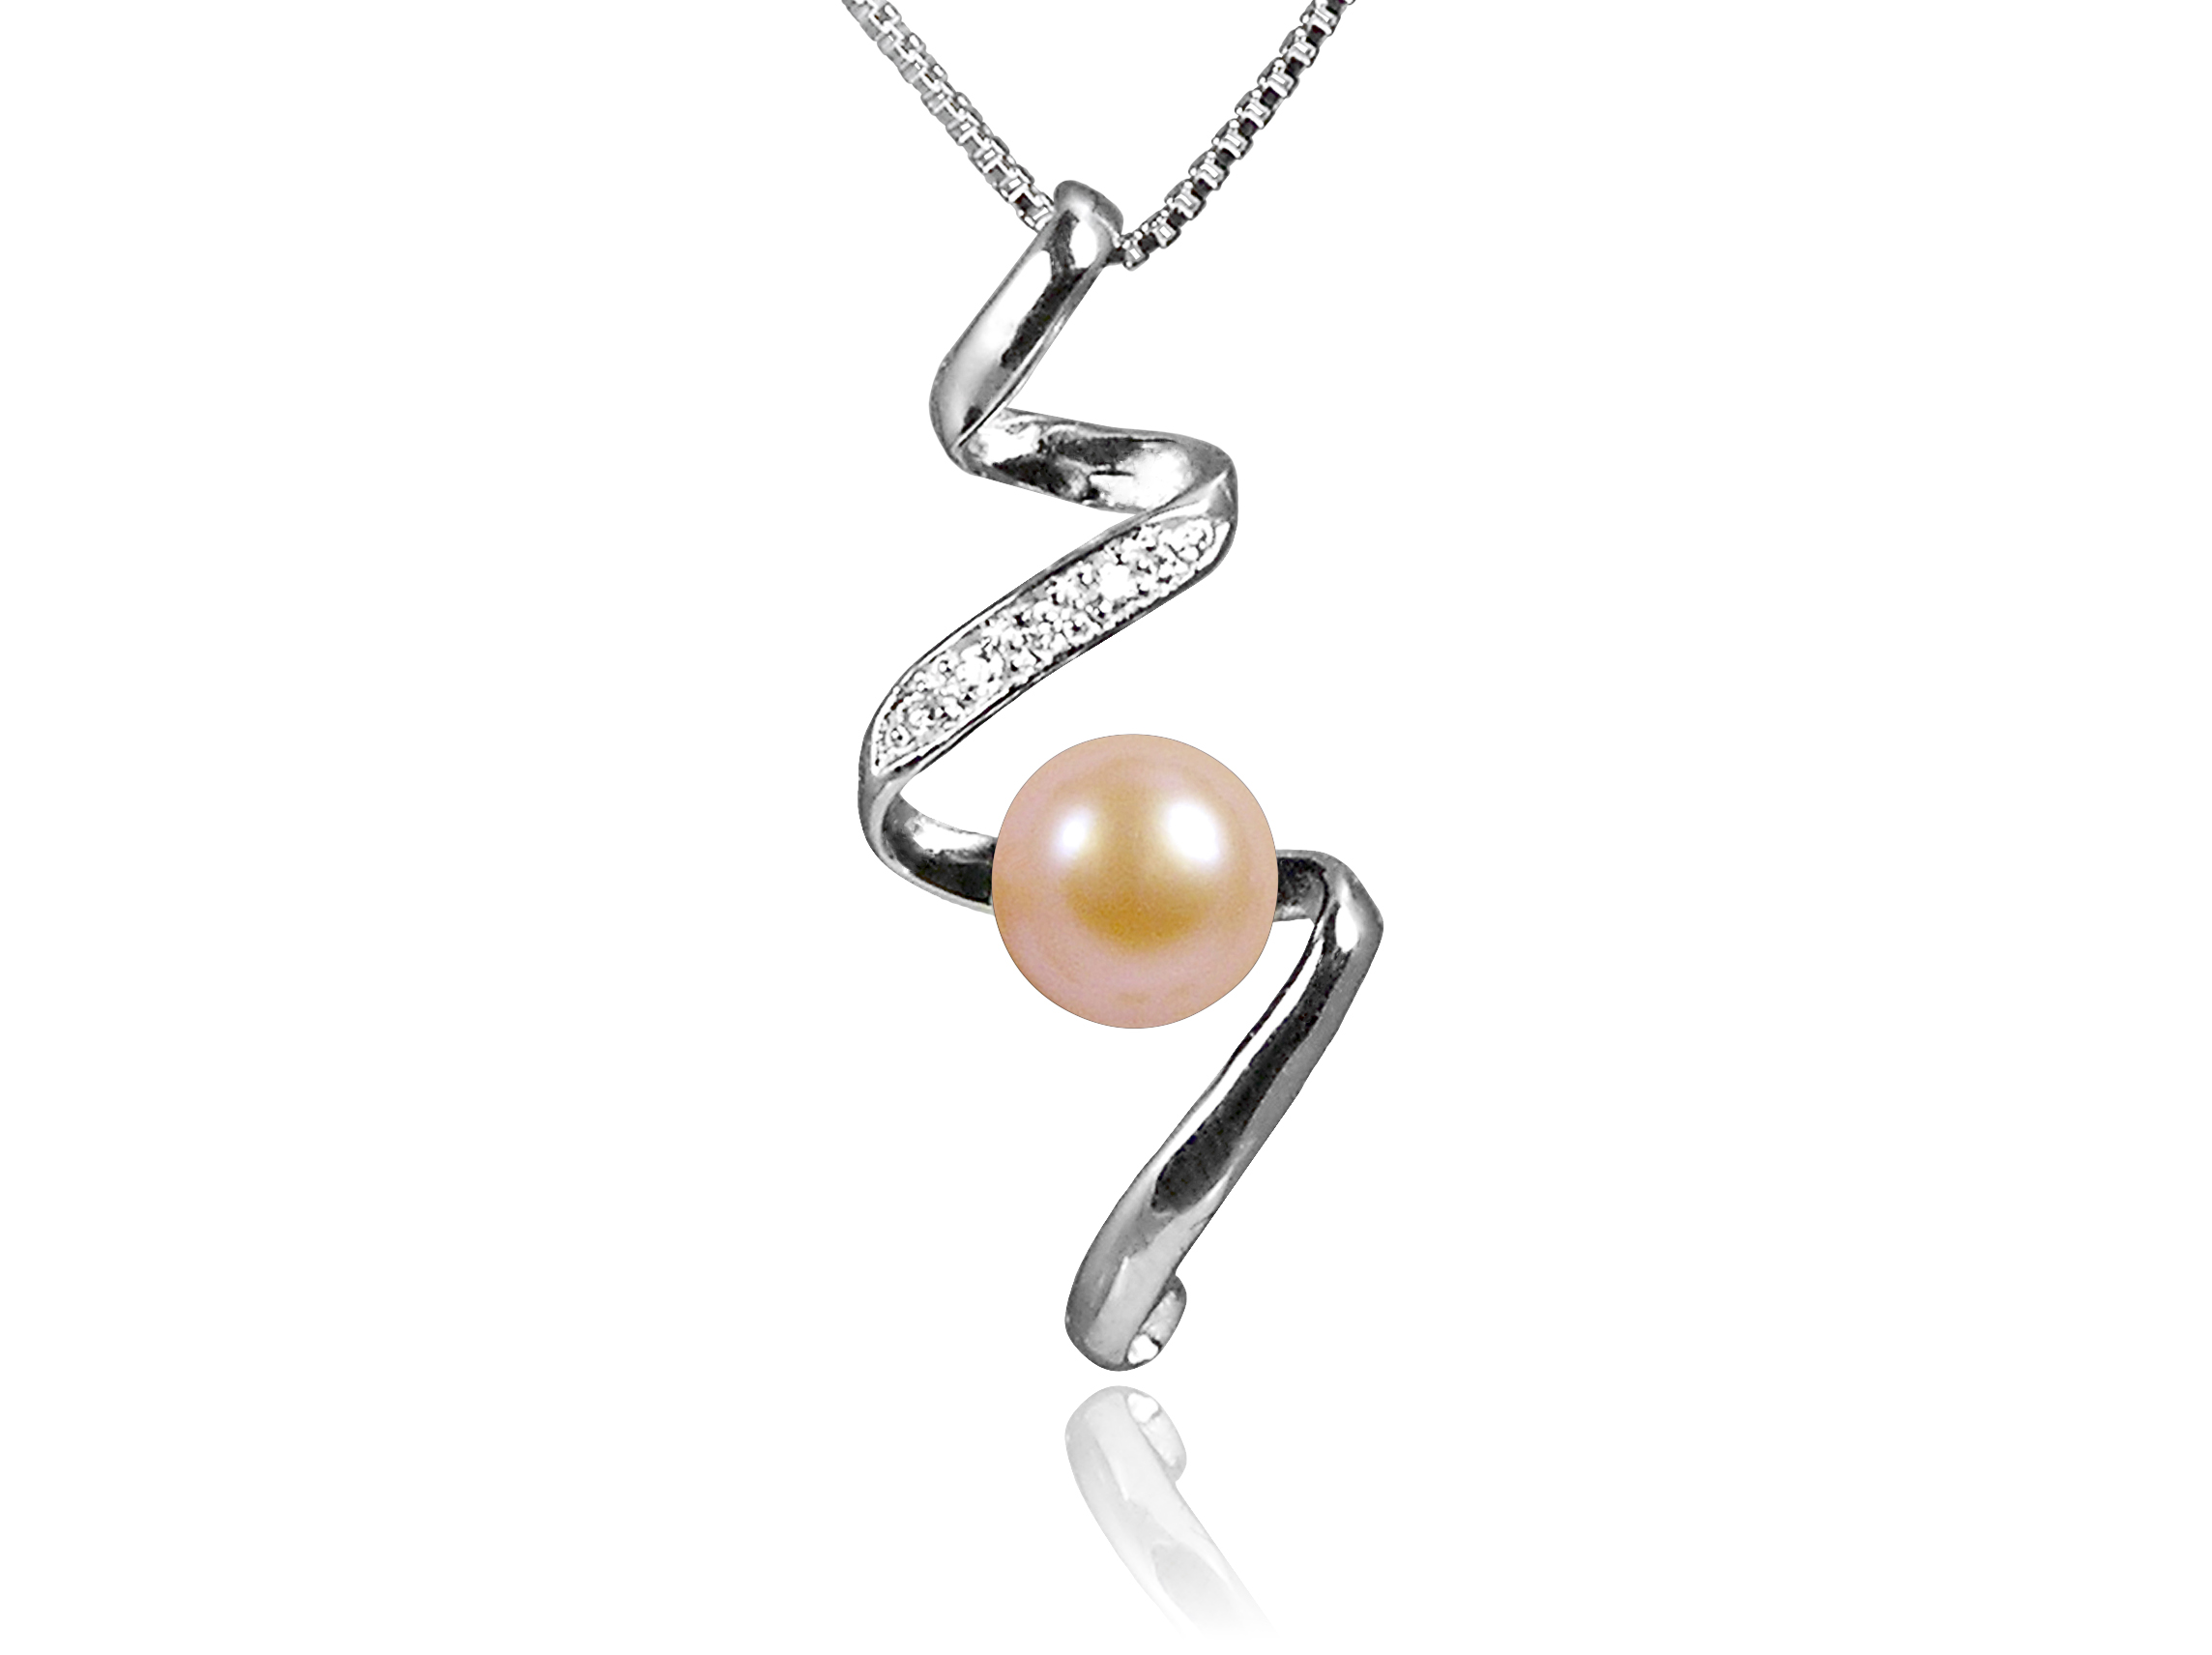 Peach Freshwater Pearl Pendant with Swarovski Crystal